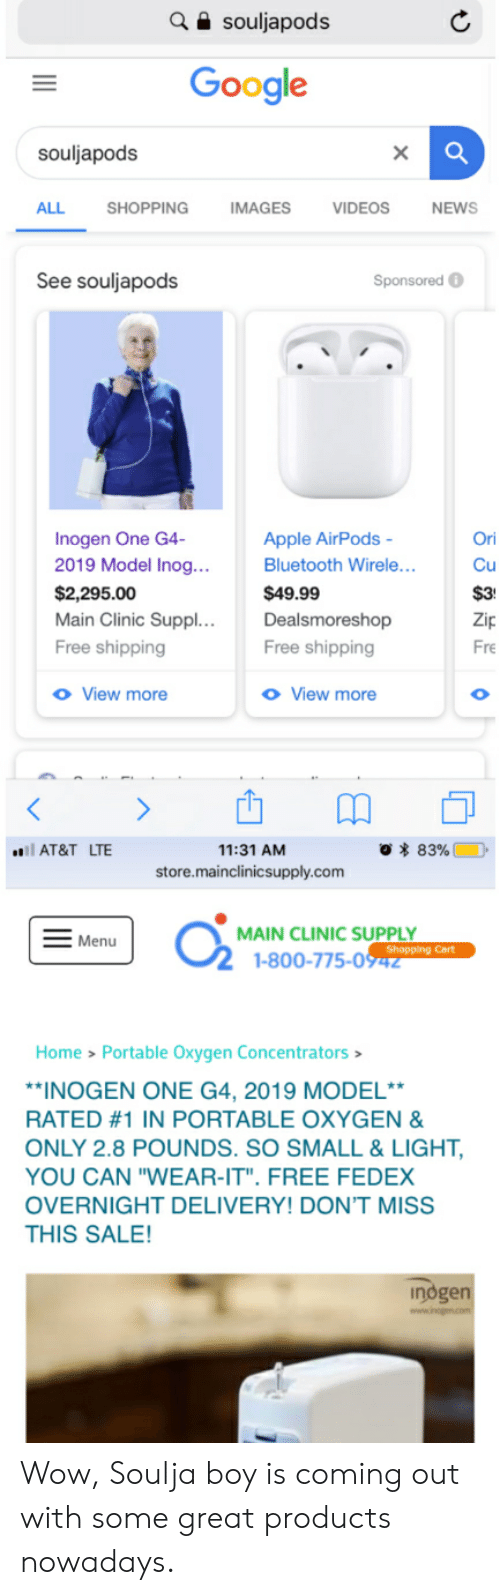 "Apple, Bluetooth, and Google: souljapods  Google  souljapods  ALL  SHOPPING  IMAGES  VIDEOS  NEWS  See souljapods  Sponsored  Inogen One G4-  2019 Model Inog...  Ori  Apple AirPods  Bluetooth Wirele...  Cu  $2,295.00  Main Clinic Suppl. ..  $49.99  $3  Dealsmoreshop  Zip  Free shipping  Free shipping  Fre  o View more  o View more  O  O 83%  l AT&T LTE  11:31 AM  store.mainclinicsupply.com  MAIN CLINIC SUPPLY  Shopping Cart  1-800-775-0942  Menu  Home > Portable Oxygen Concentrators  *INOGEN ONE G4, 2019 MODEL**  RATED #1 IN PORTABLE OXYGEN &  ONLY 2.8 POUNDS. SO SMALL & LIGHT,  YOU CAN ""WEAR-IT"". FREE FEDEX  OVERNIGHT DELIVERY! DON'T MISS  THIS SALE!  indgen Wow, Soulja boy is coming out with some great products nowadays."